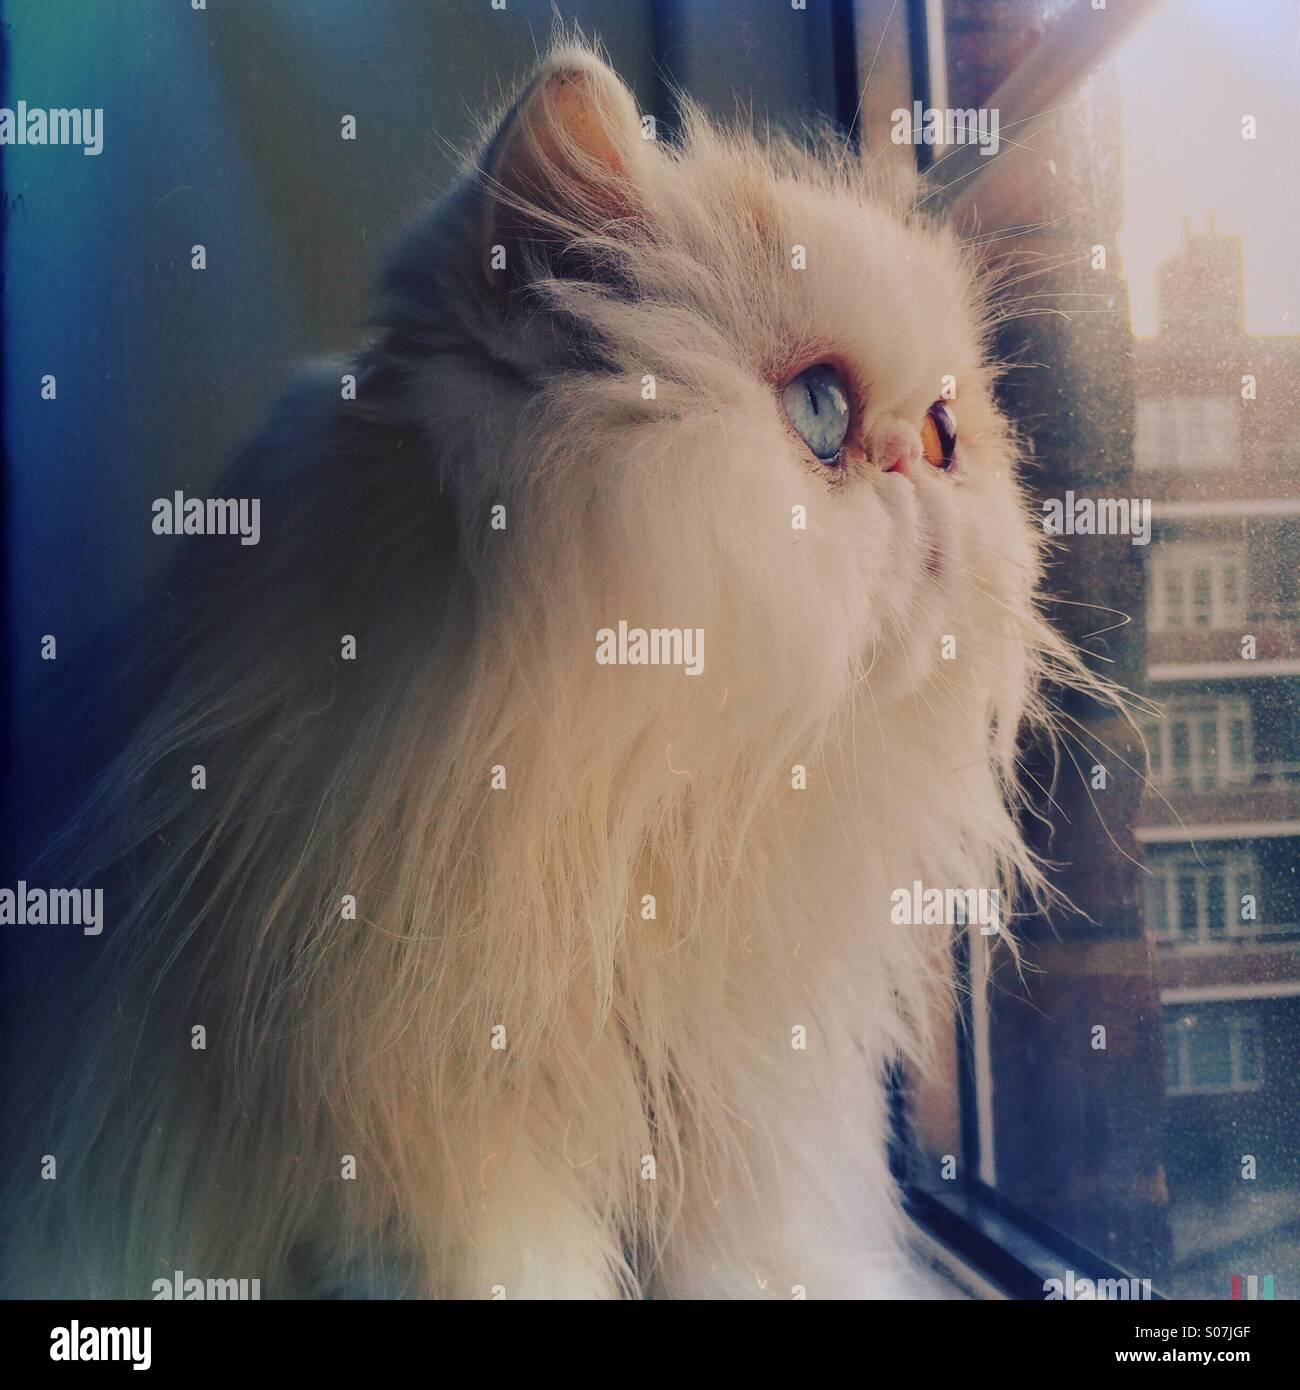 Cute white Persian cat looking outside the window - Stock Image